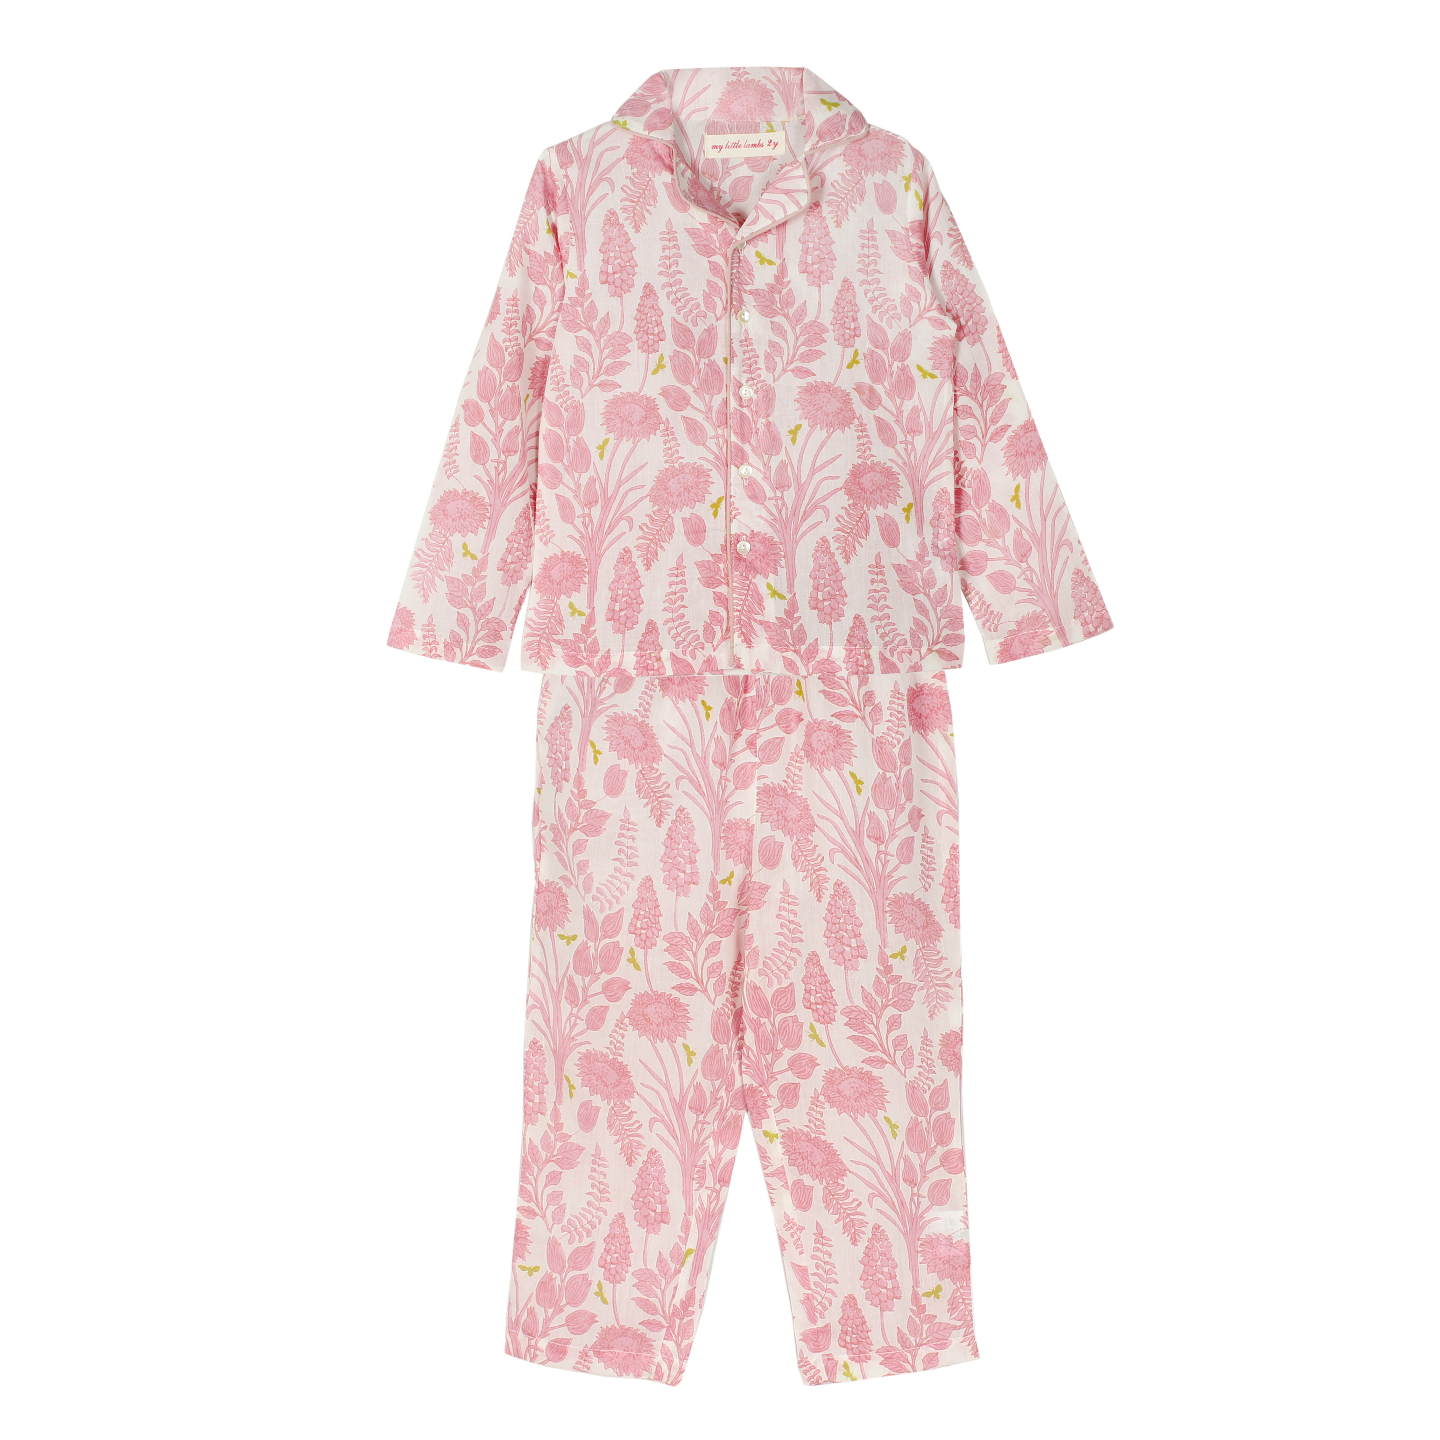 Pony Night Suit Pink